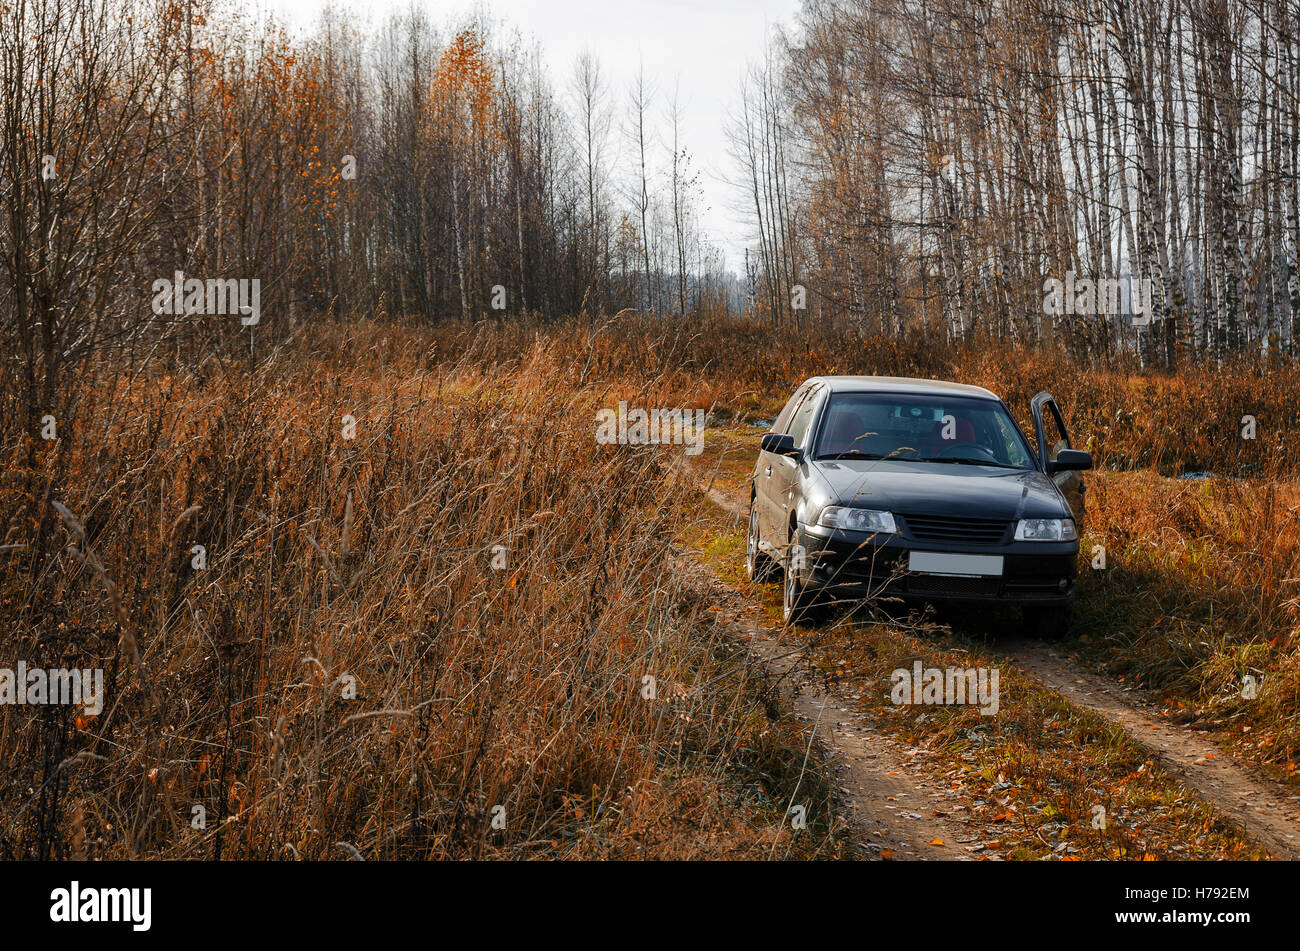 Abandoned Junk Car In Woods Stock Photos Abandoned Junk Car In